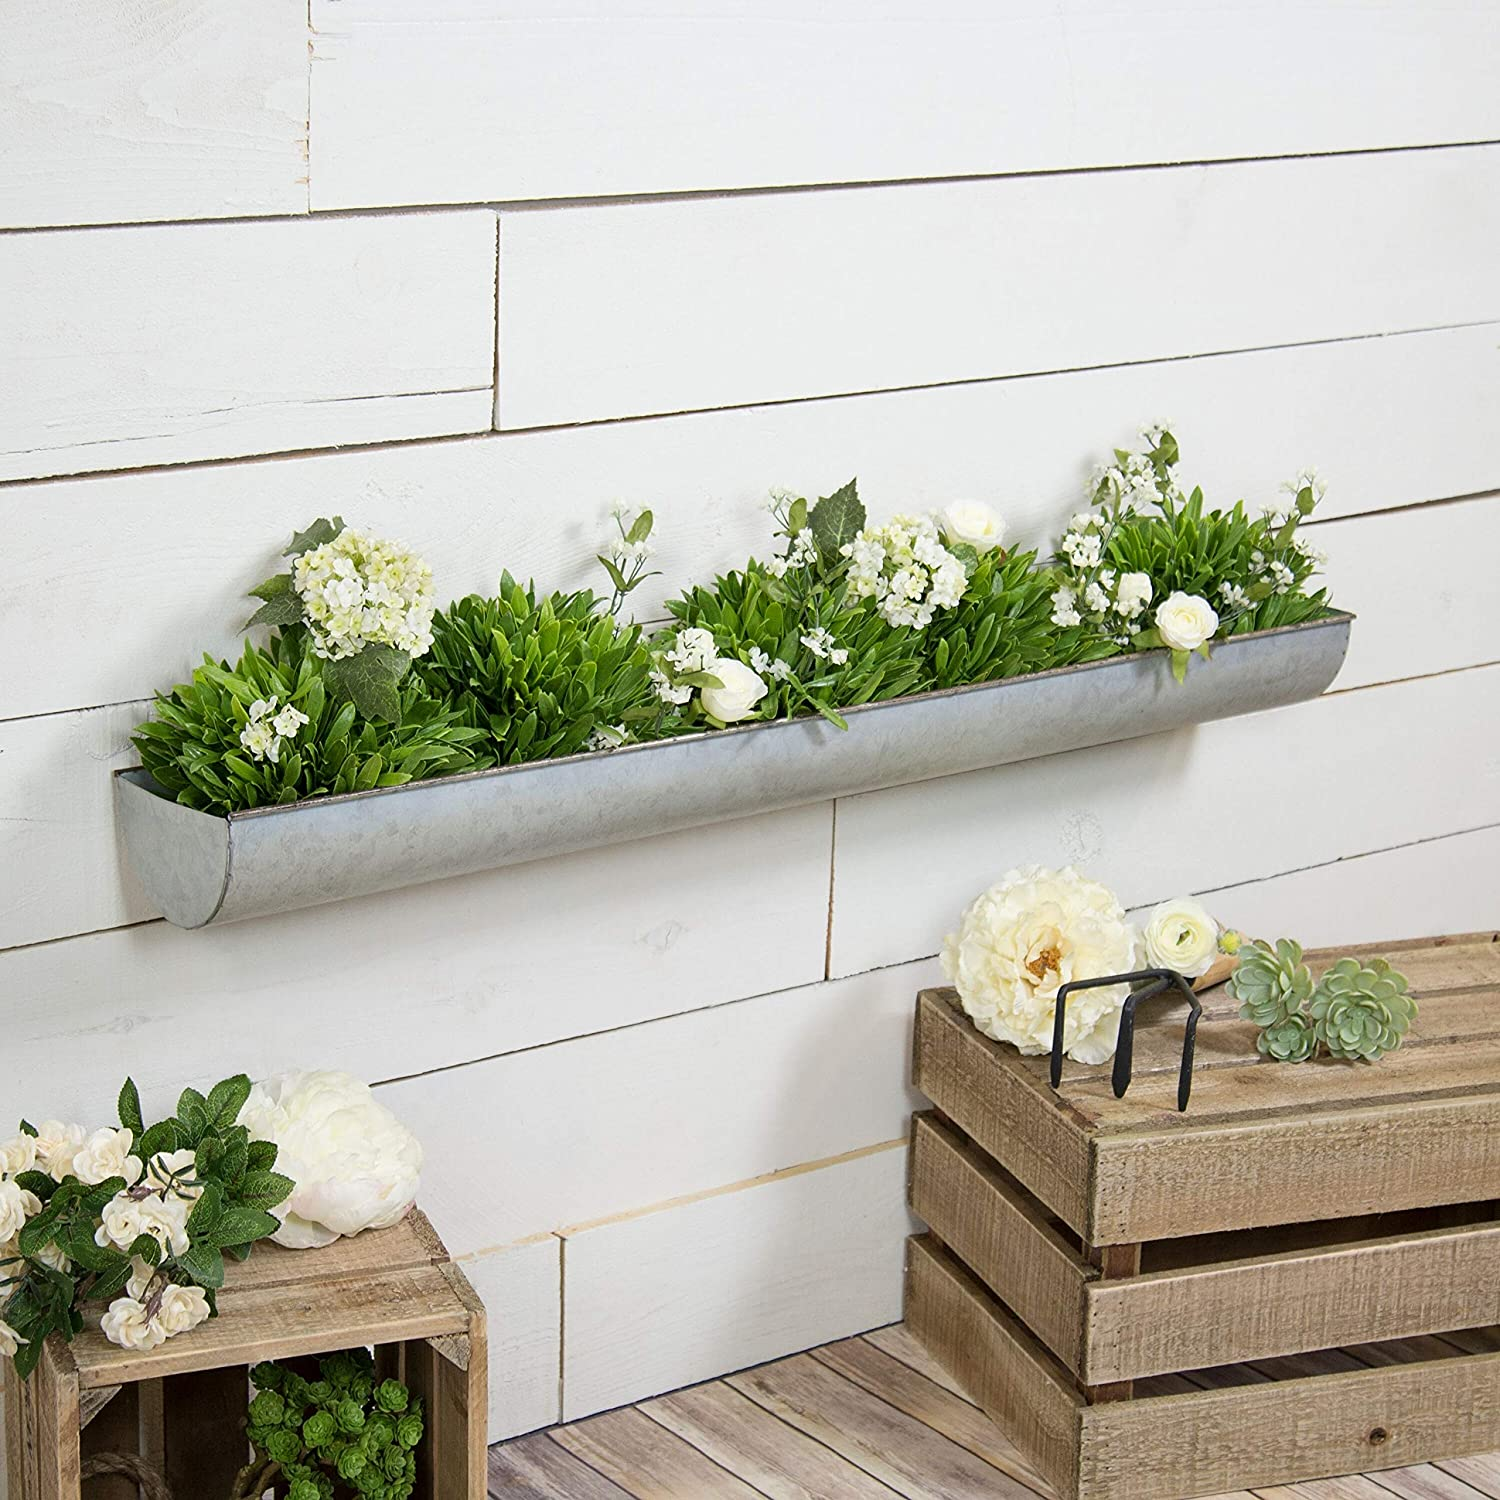 36 Metal Wall Planter Decorative Natural Metal Tray Style Wall Mounted Plant Holder